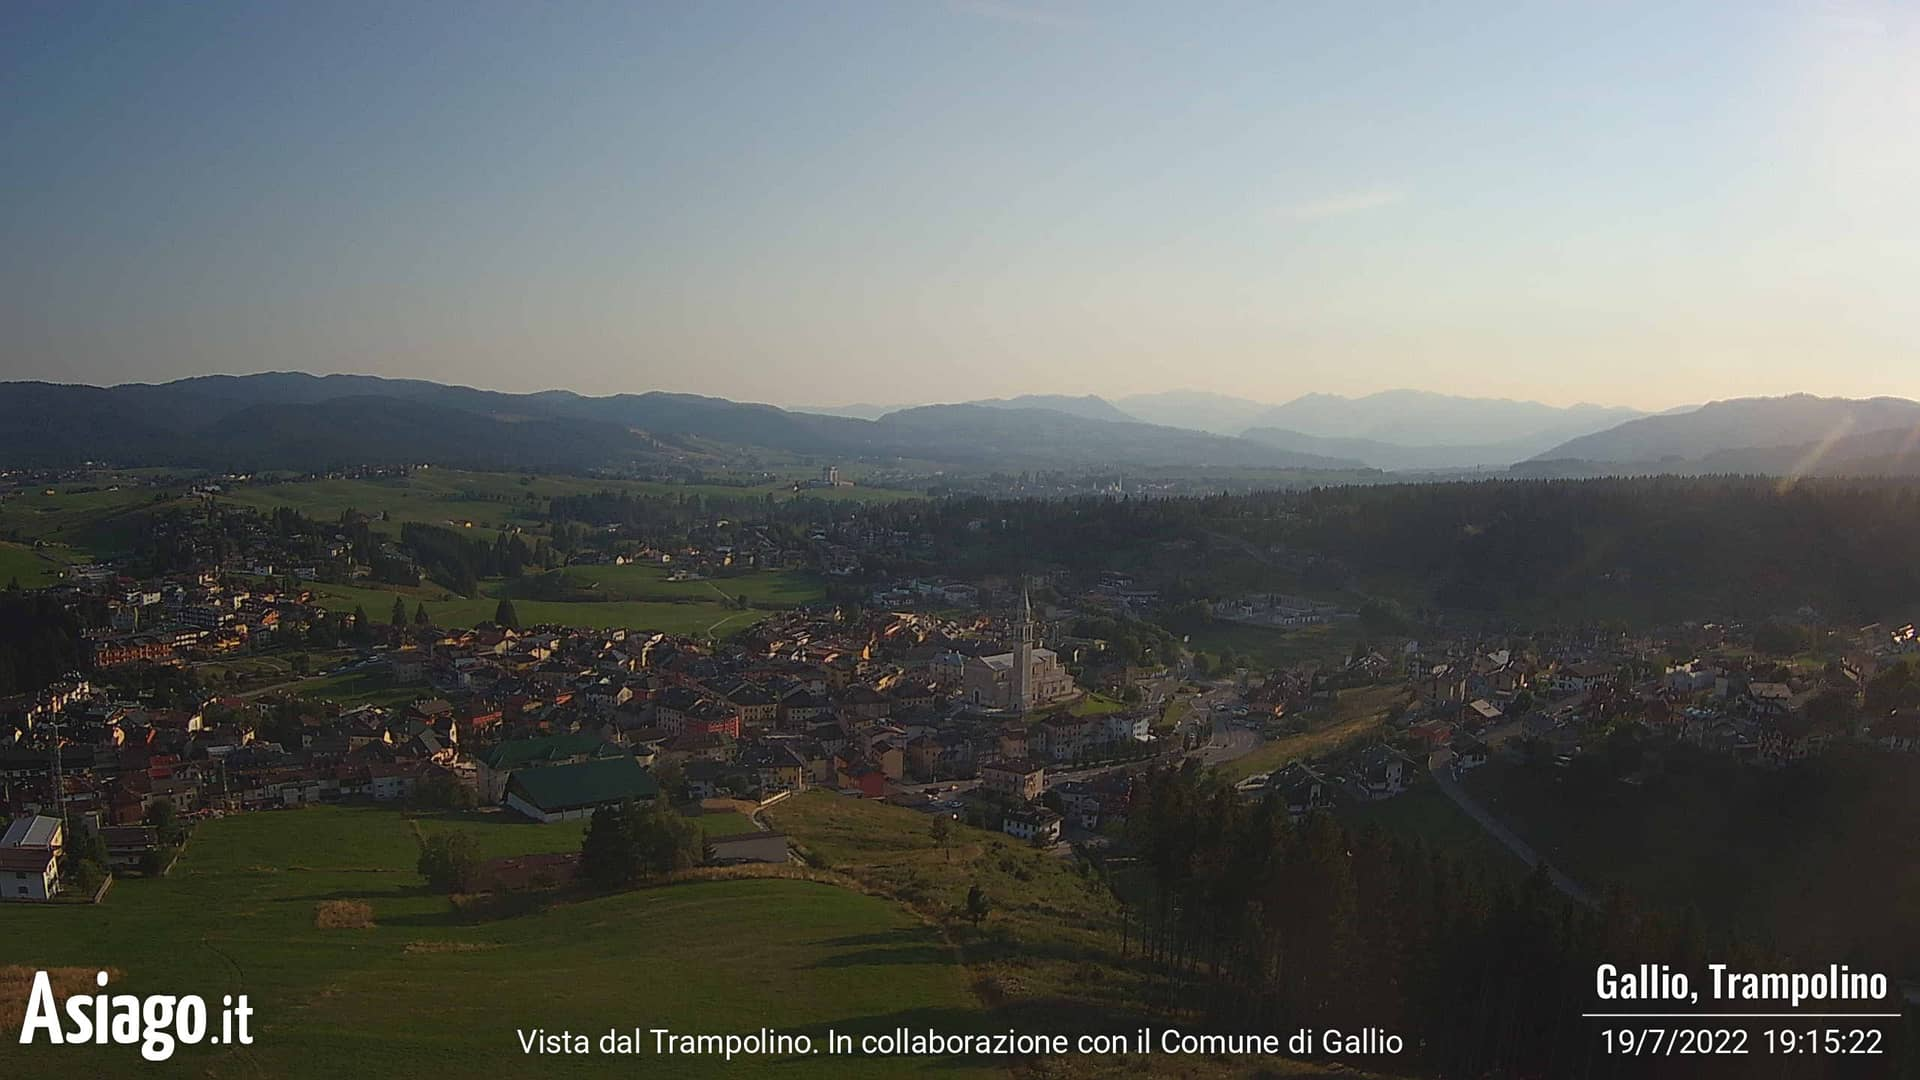 Webcam con vista dal Trampolino di Gallio